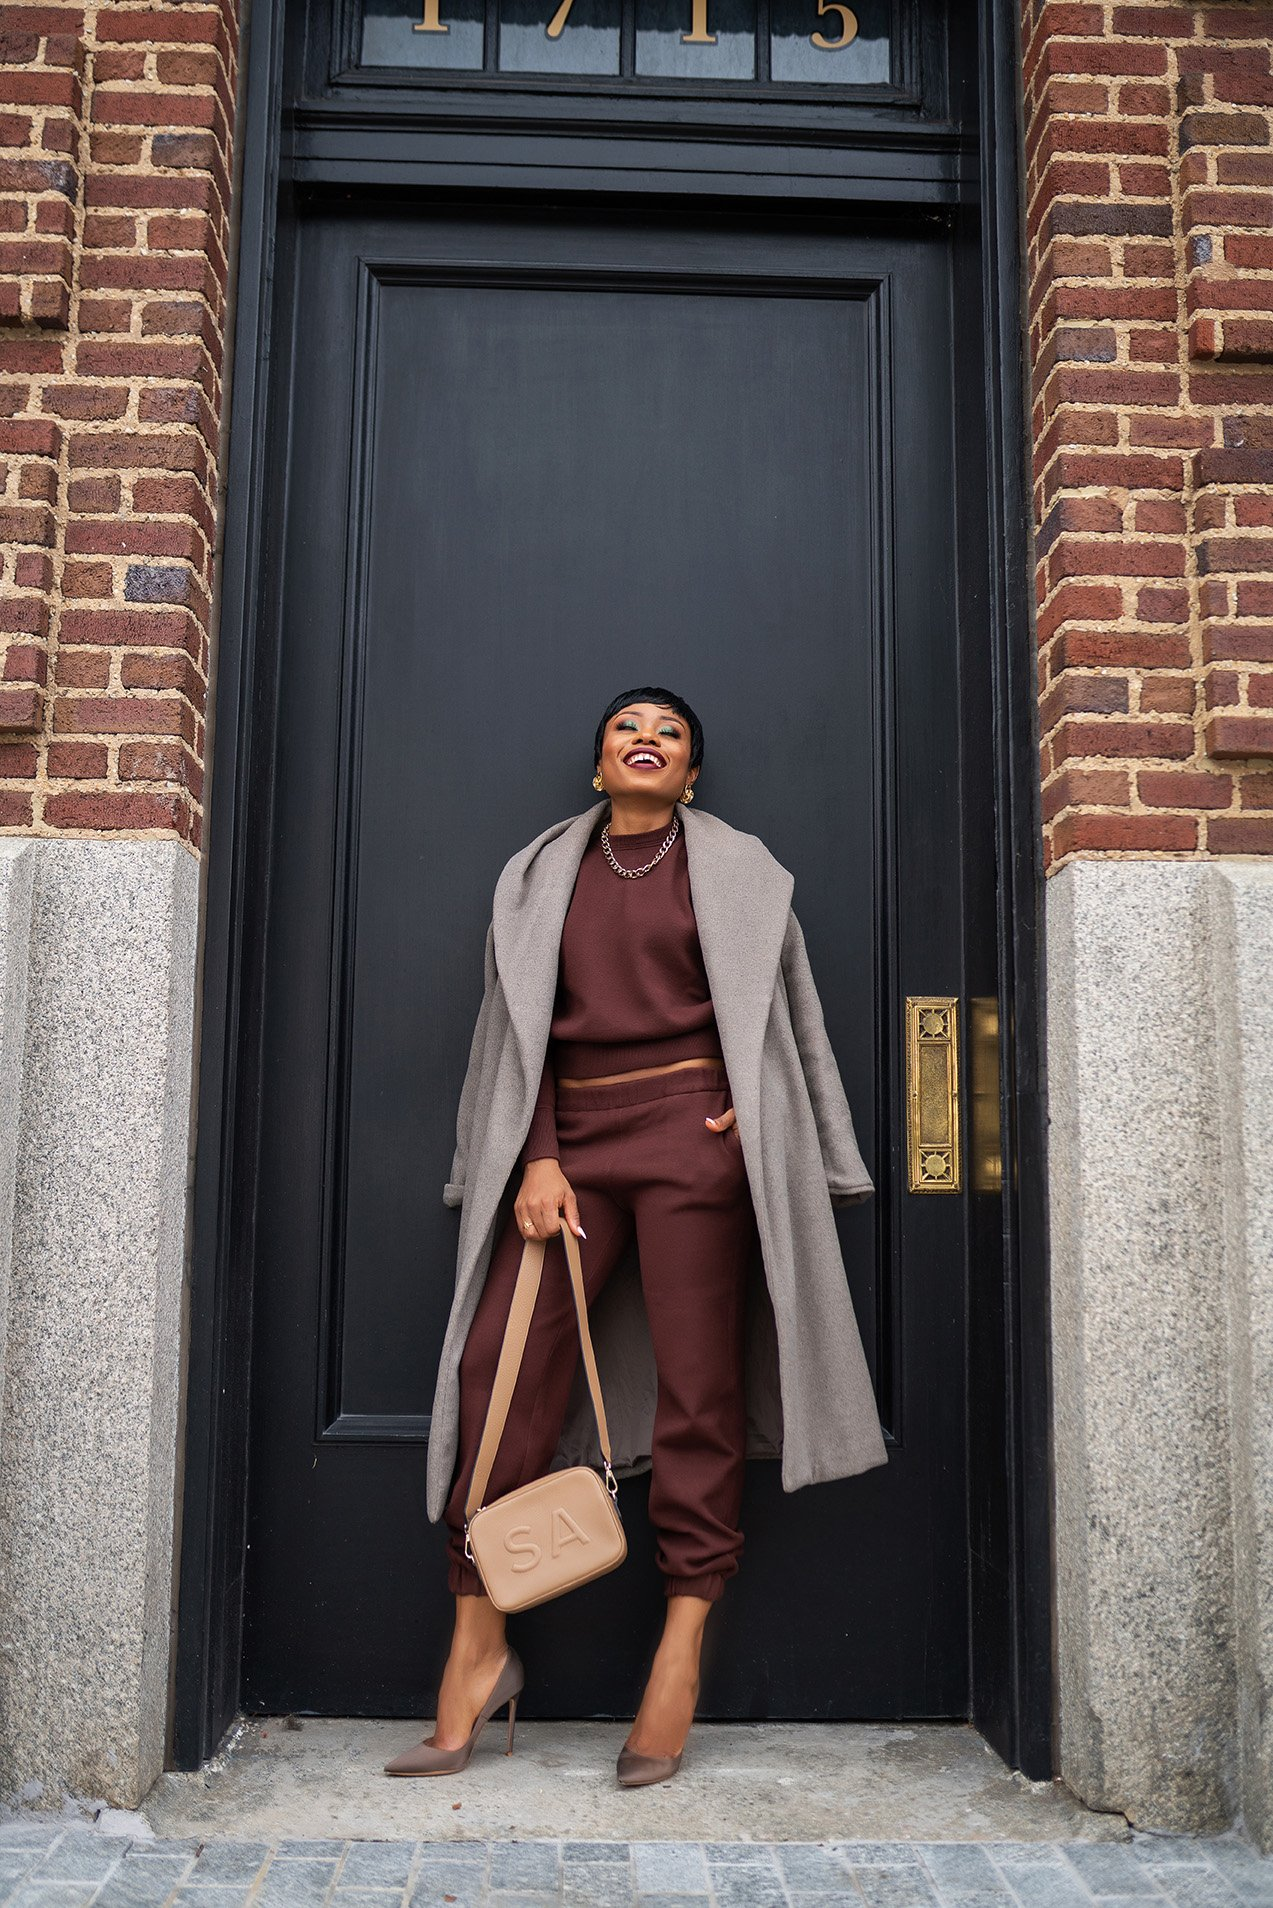 stella-adewunmi-of-jadore-fashion-blog-shares-how-to-style-Zara-sweatshirt-and-sweatpants-set